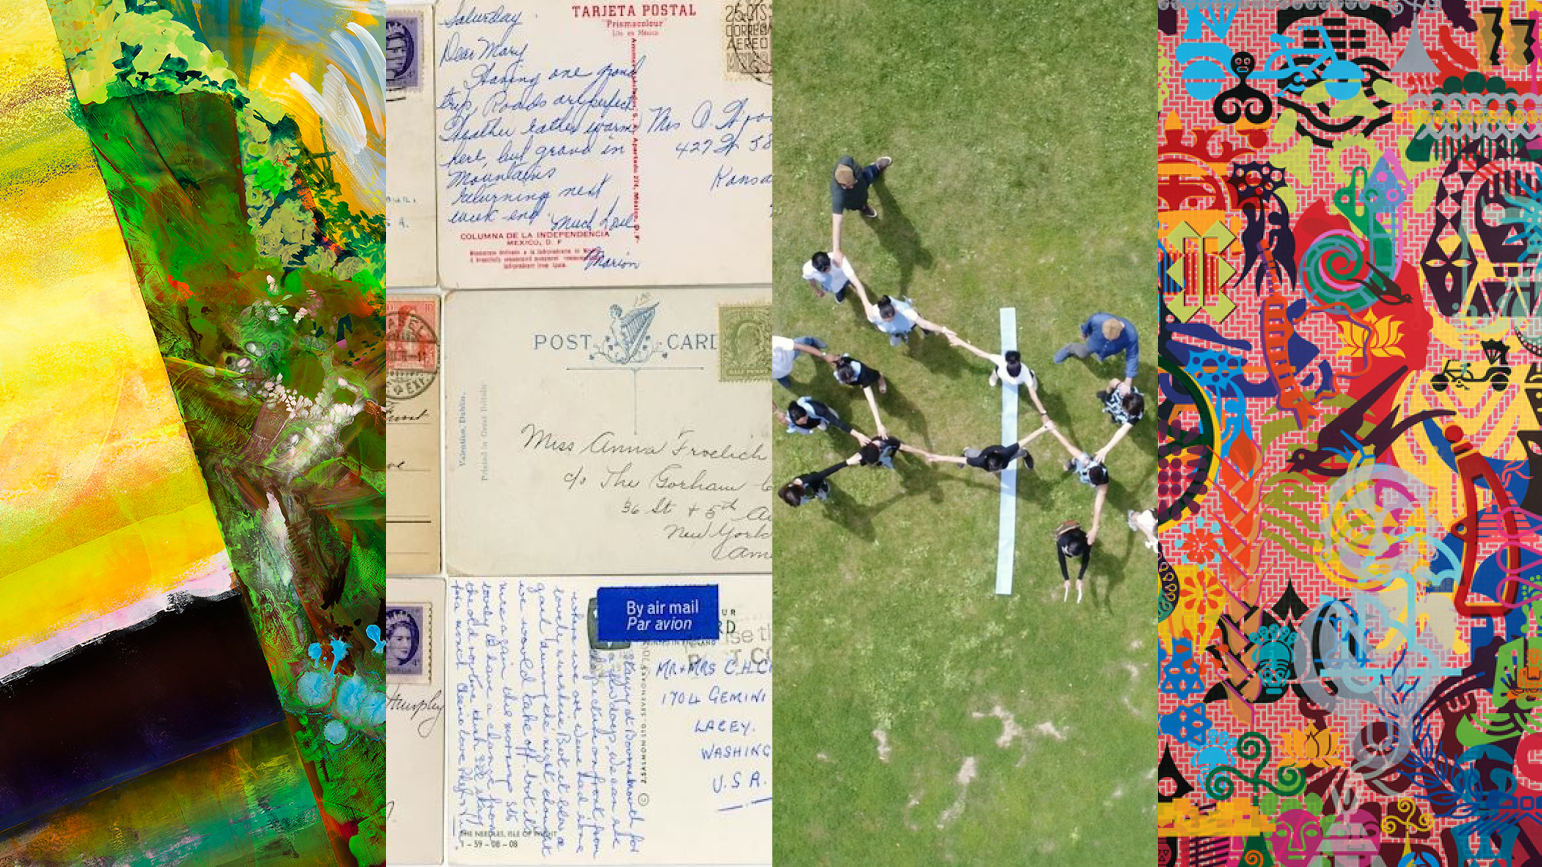 Four images: 1: abstract painting in primarily yellow and green; 2: several old postcards; 3; a group of people holding hands photographed on a lawn from above; 4: abstract painting with bright colors with many overlapping symbols